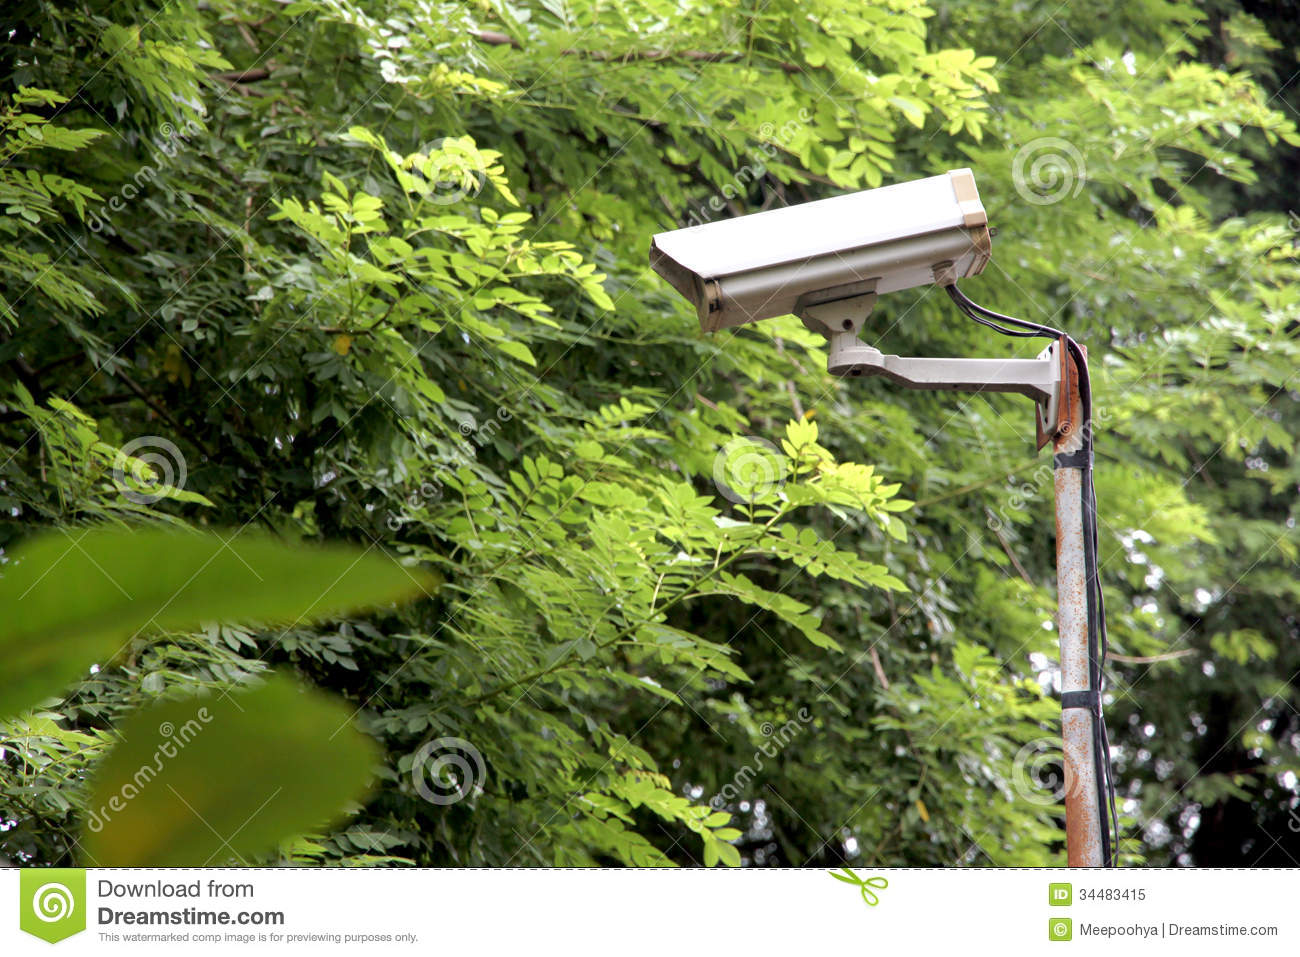 Cctv Security Camera In The Park Royalty Free Stock Photo